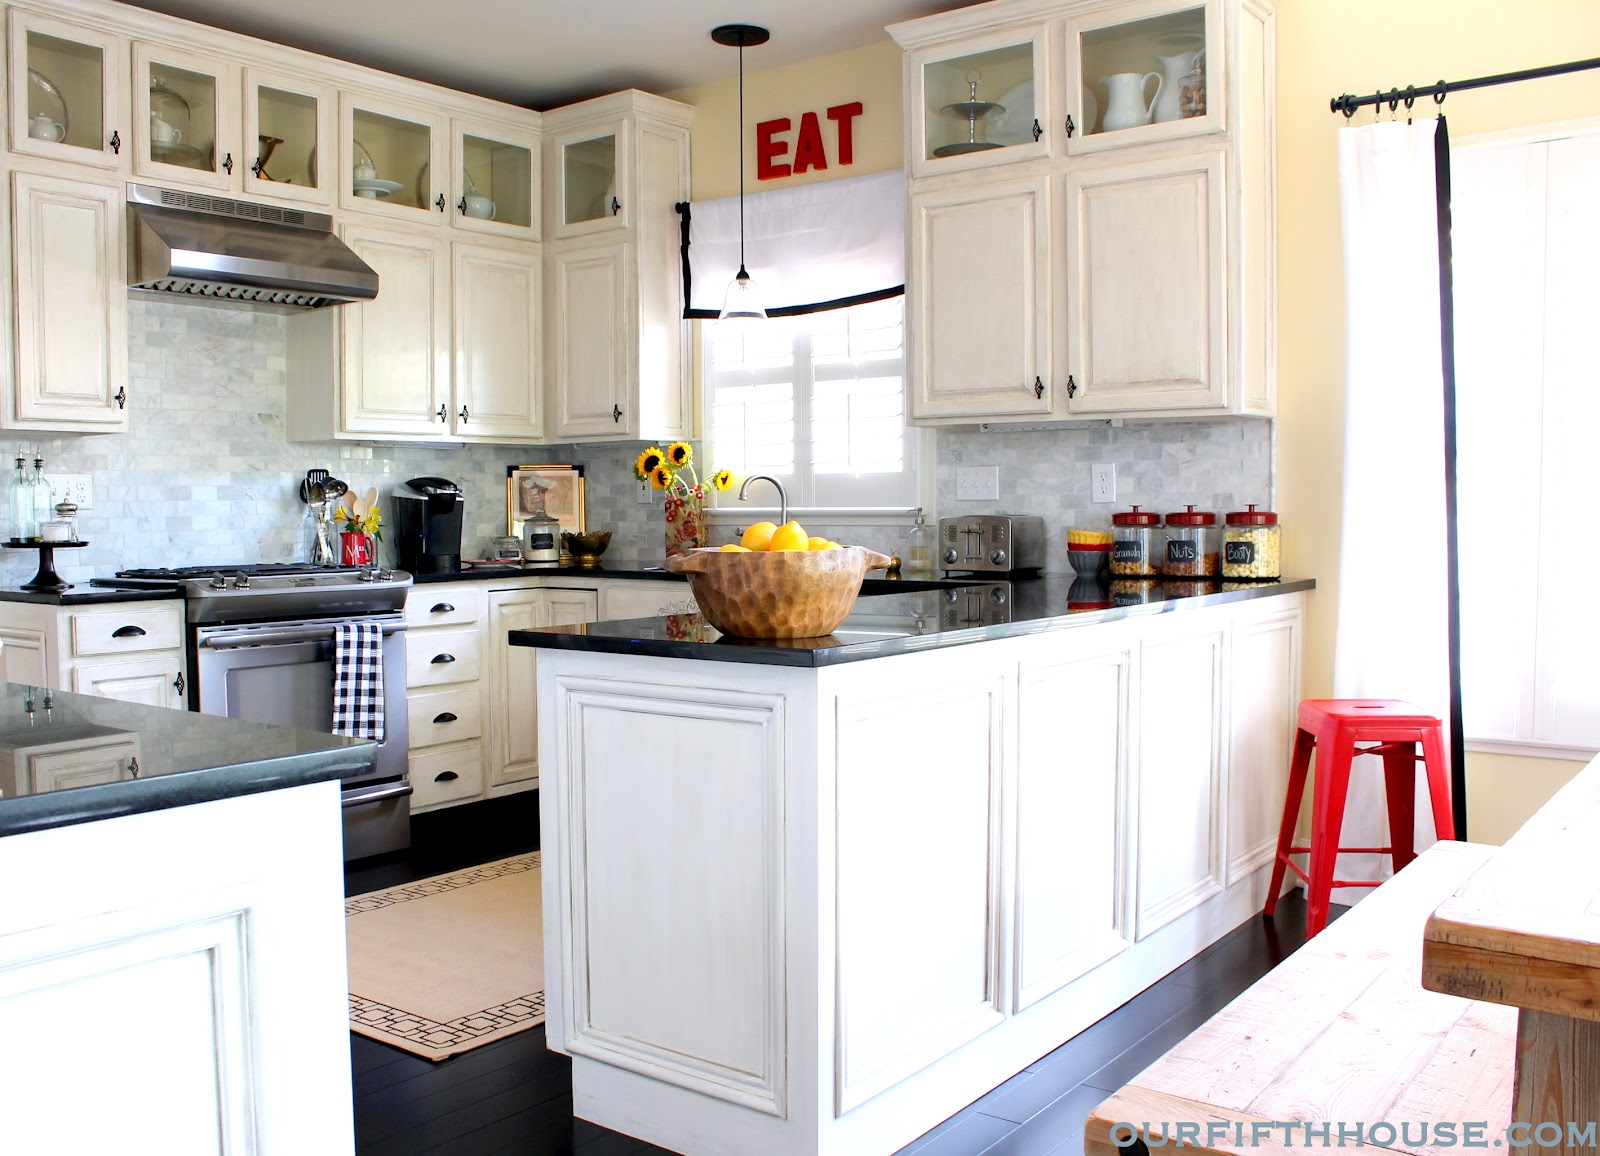 kitchen sink pendant light appliances packages new lighting a lantern over the our fifth